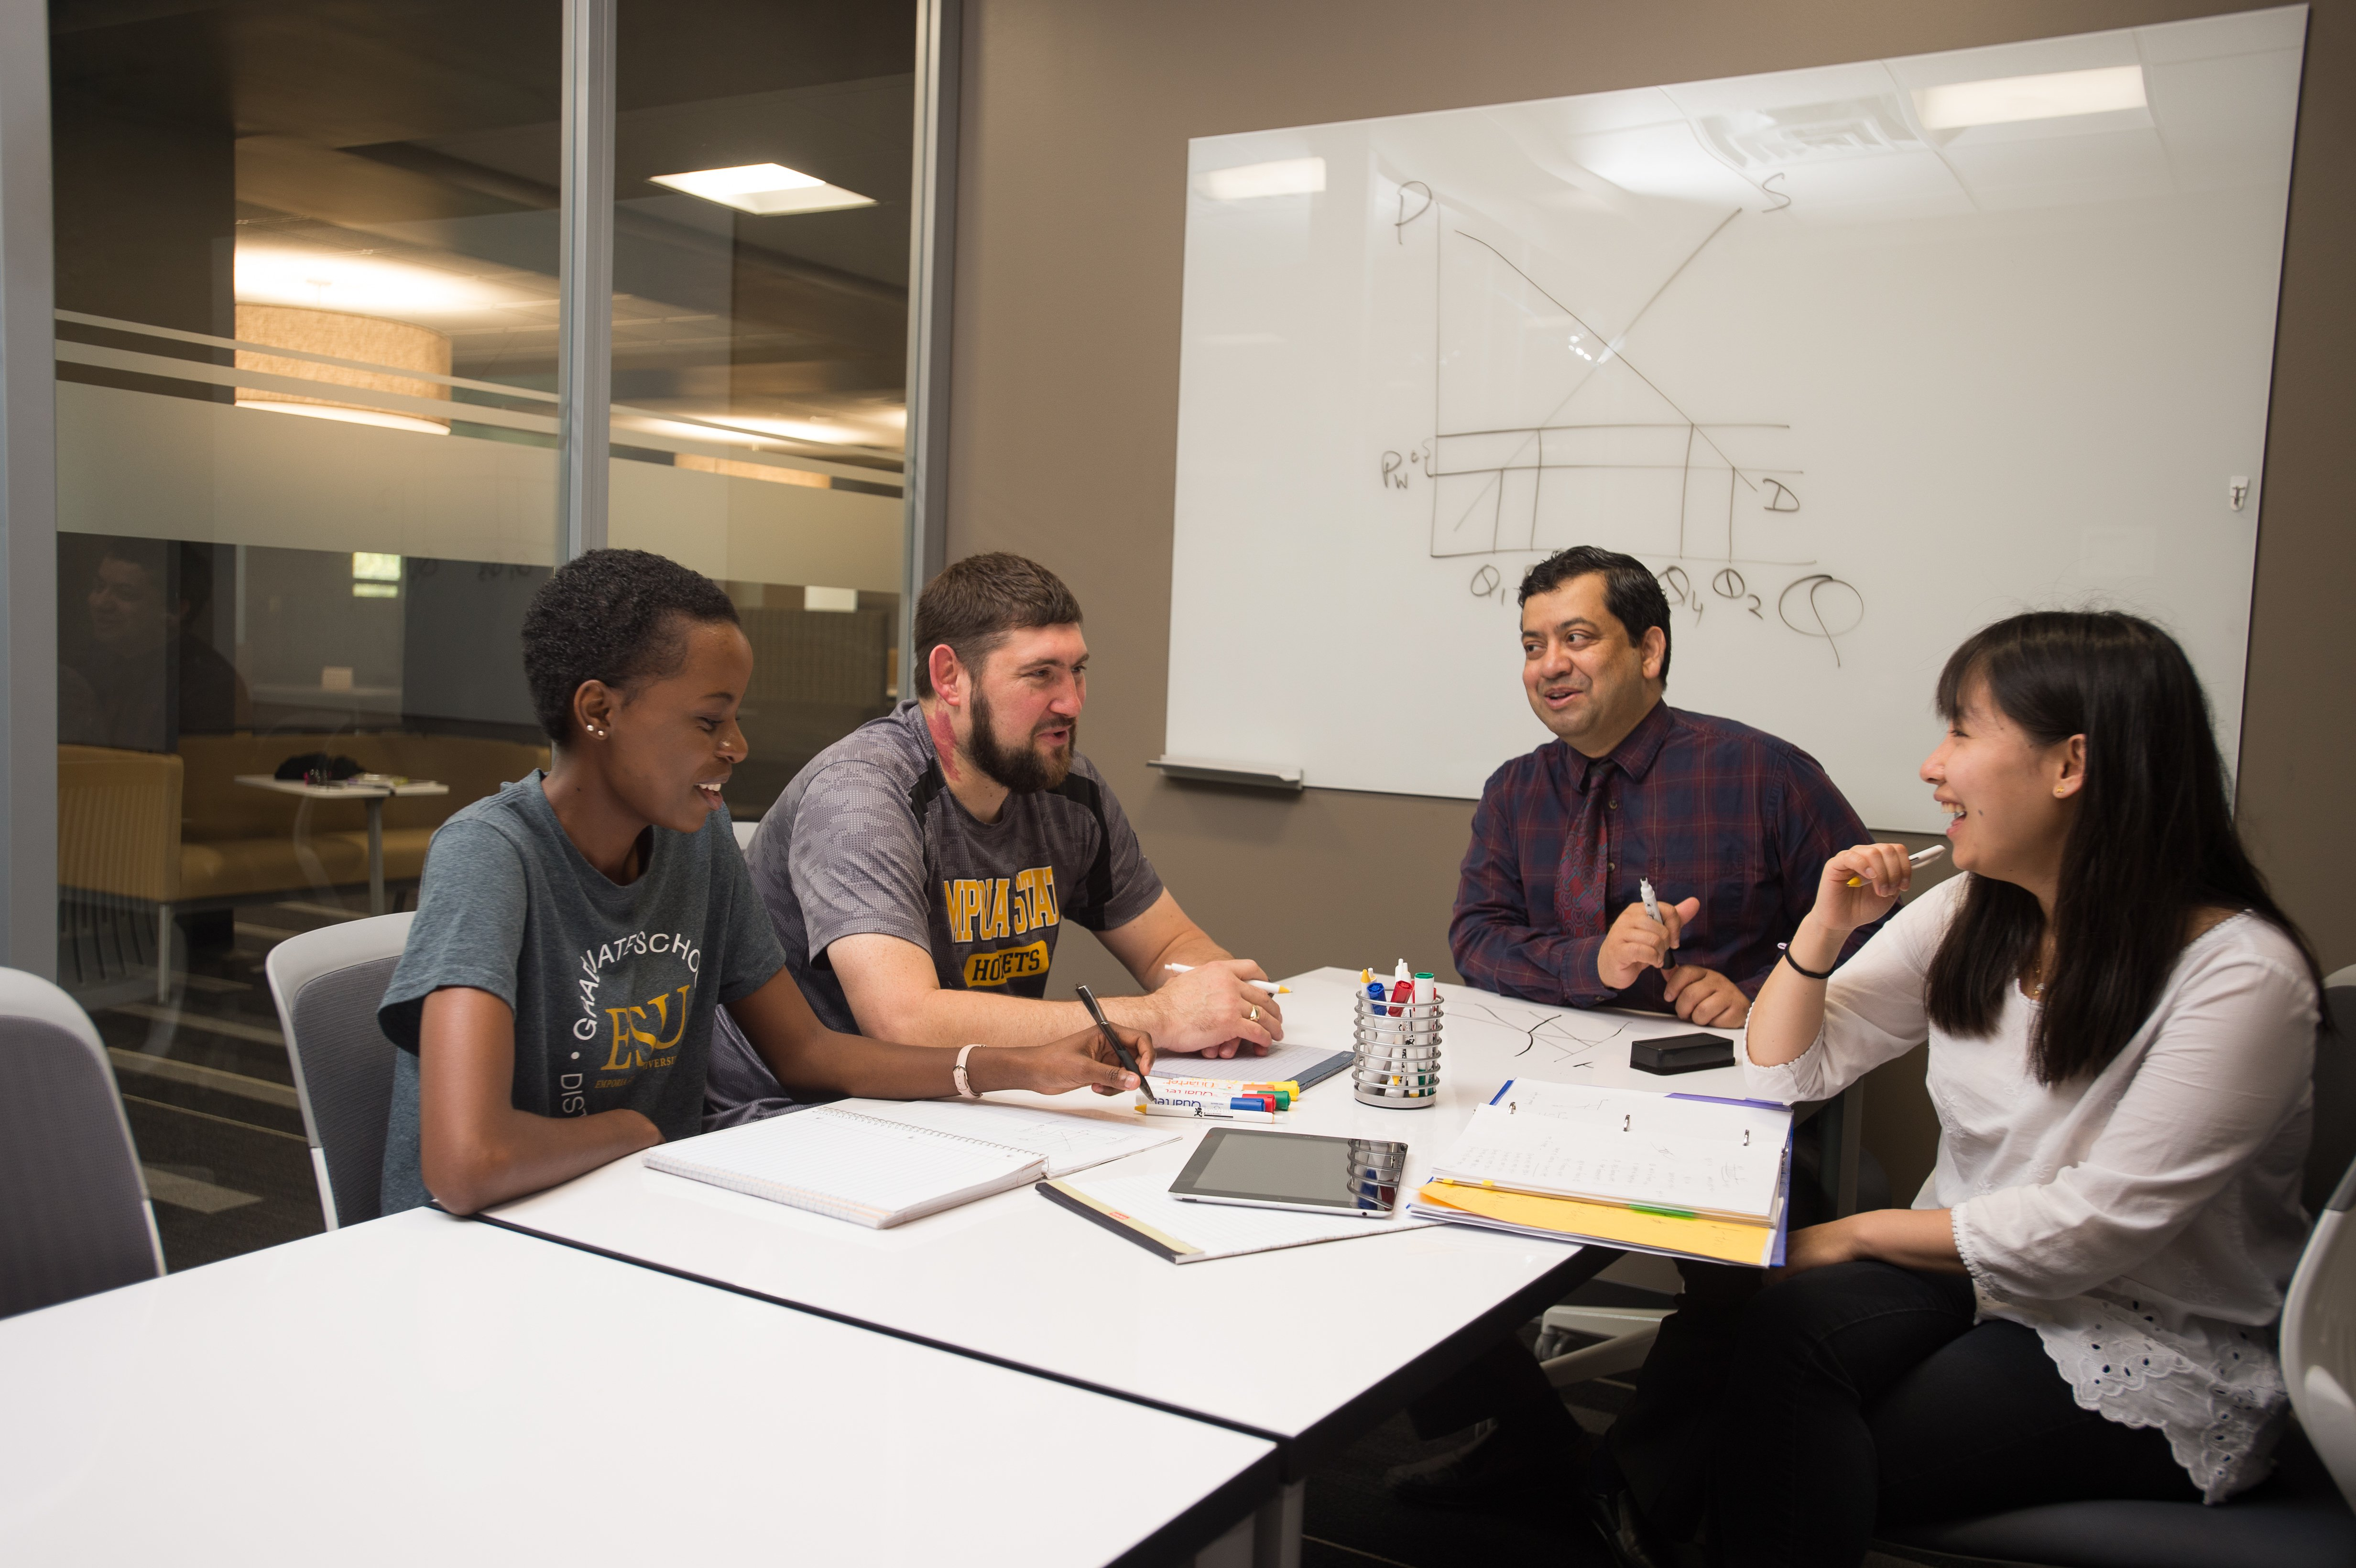 Students meeting in a conference room